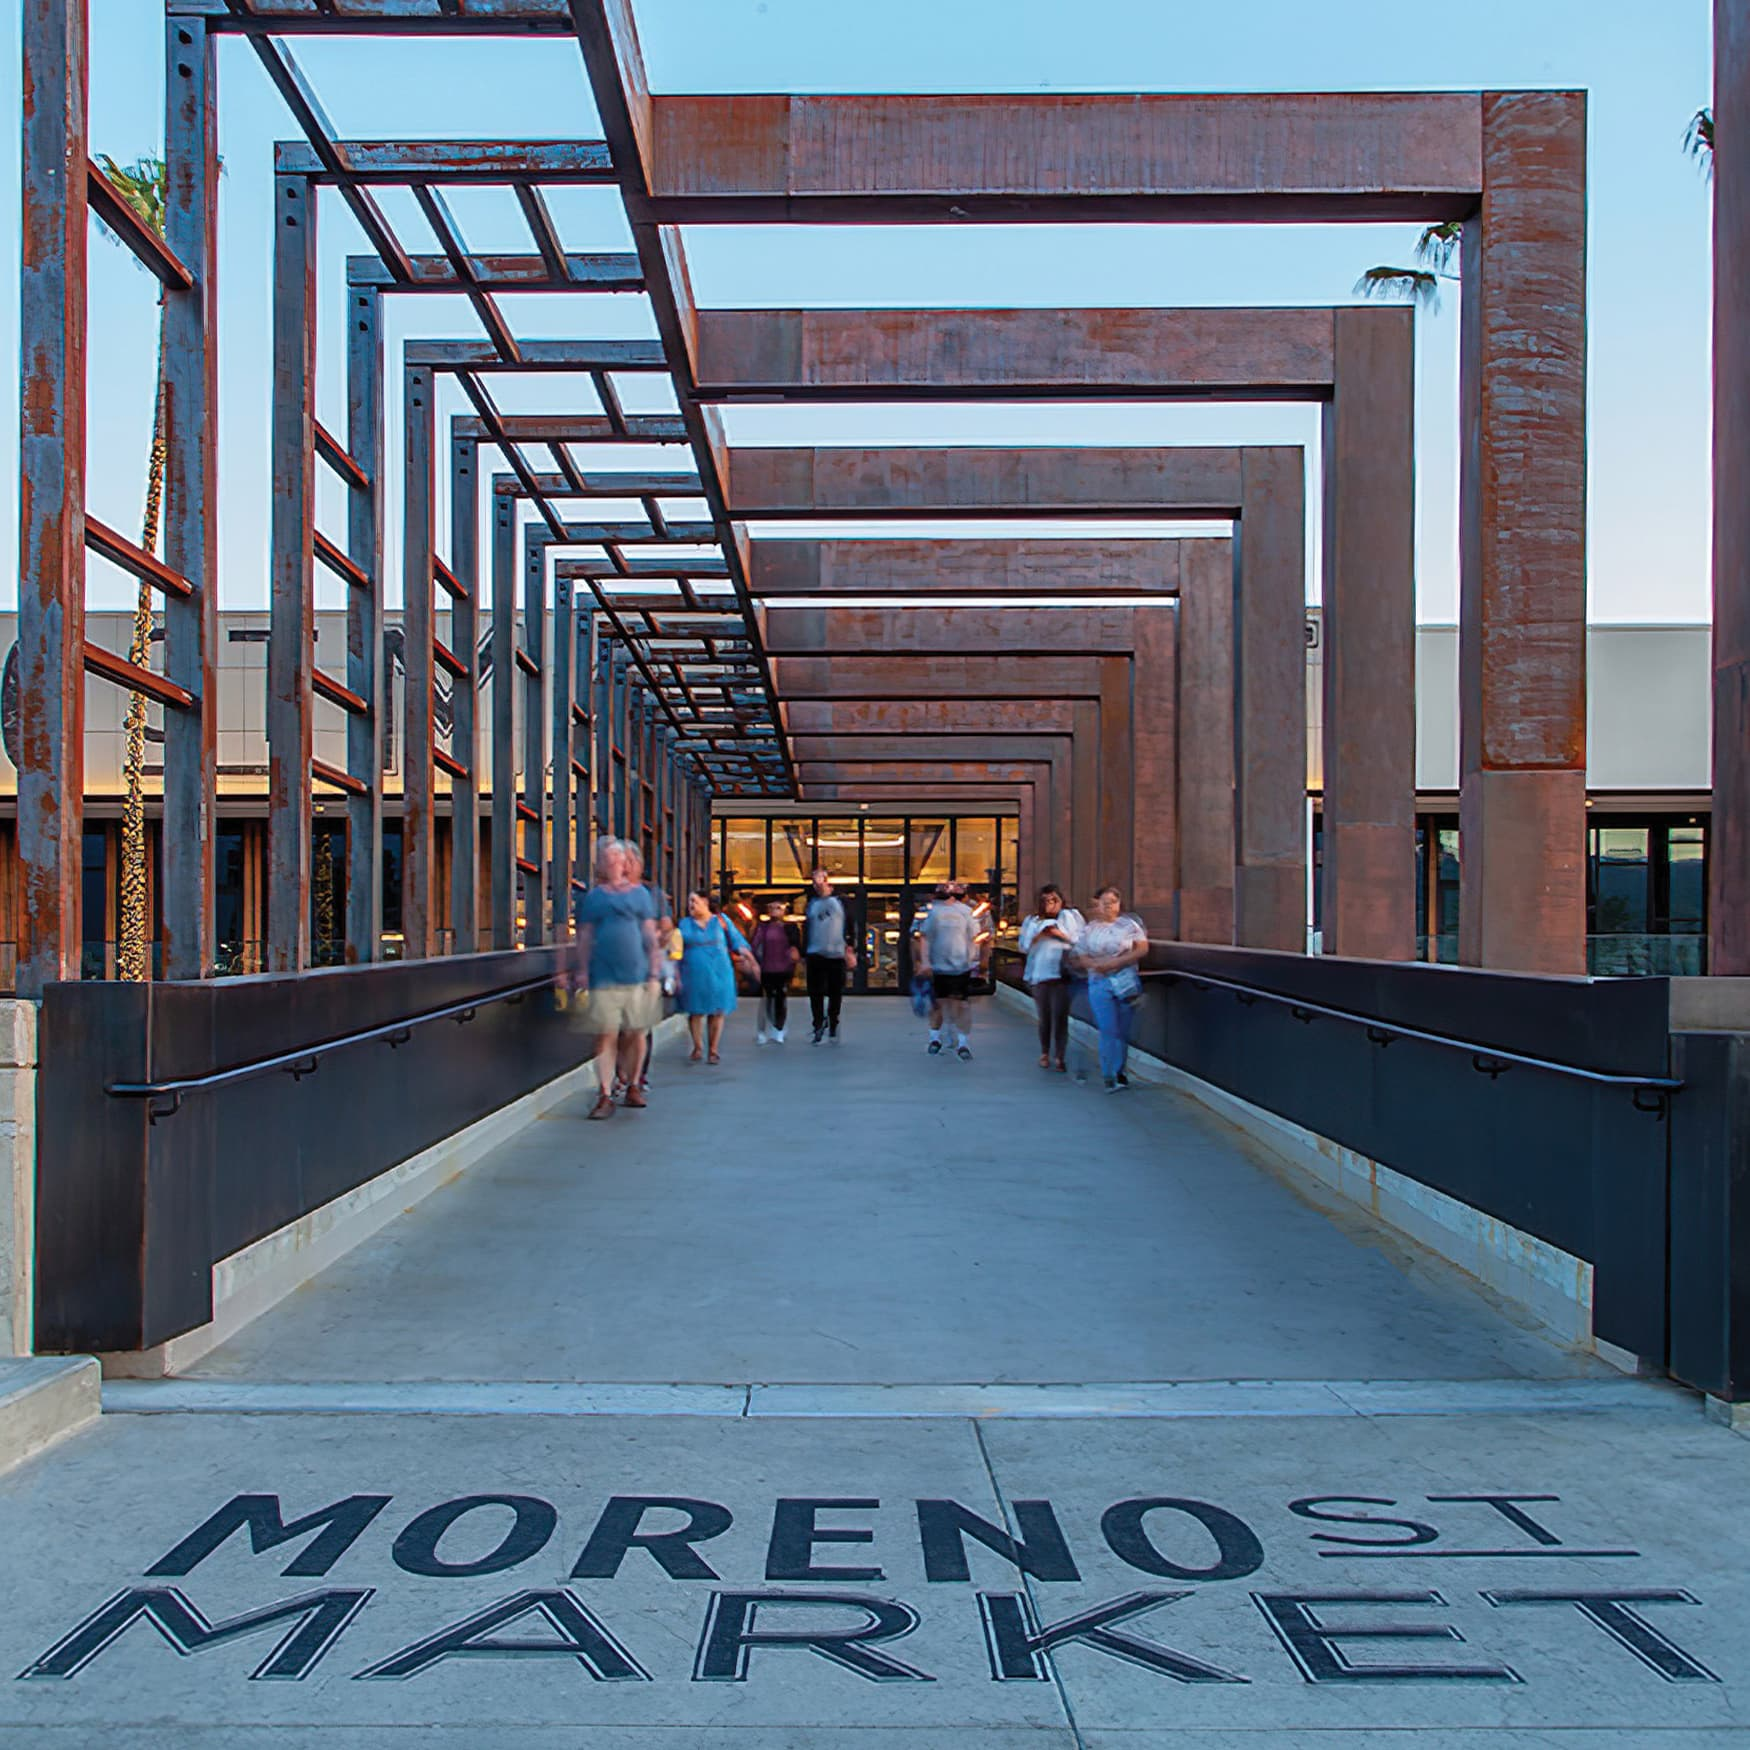 A rustic design aesthetic with painted sign identity on pedestrian walkway into Moreno St Market at Montclair Place